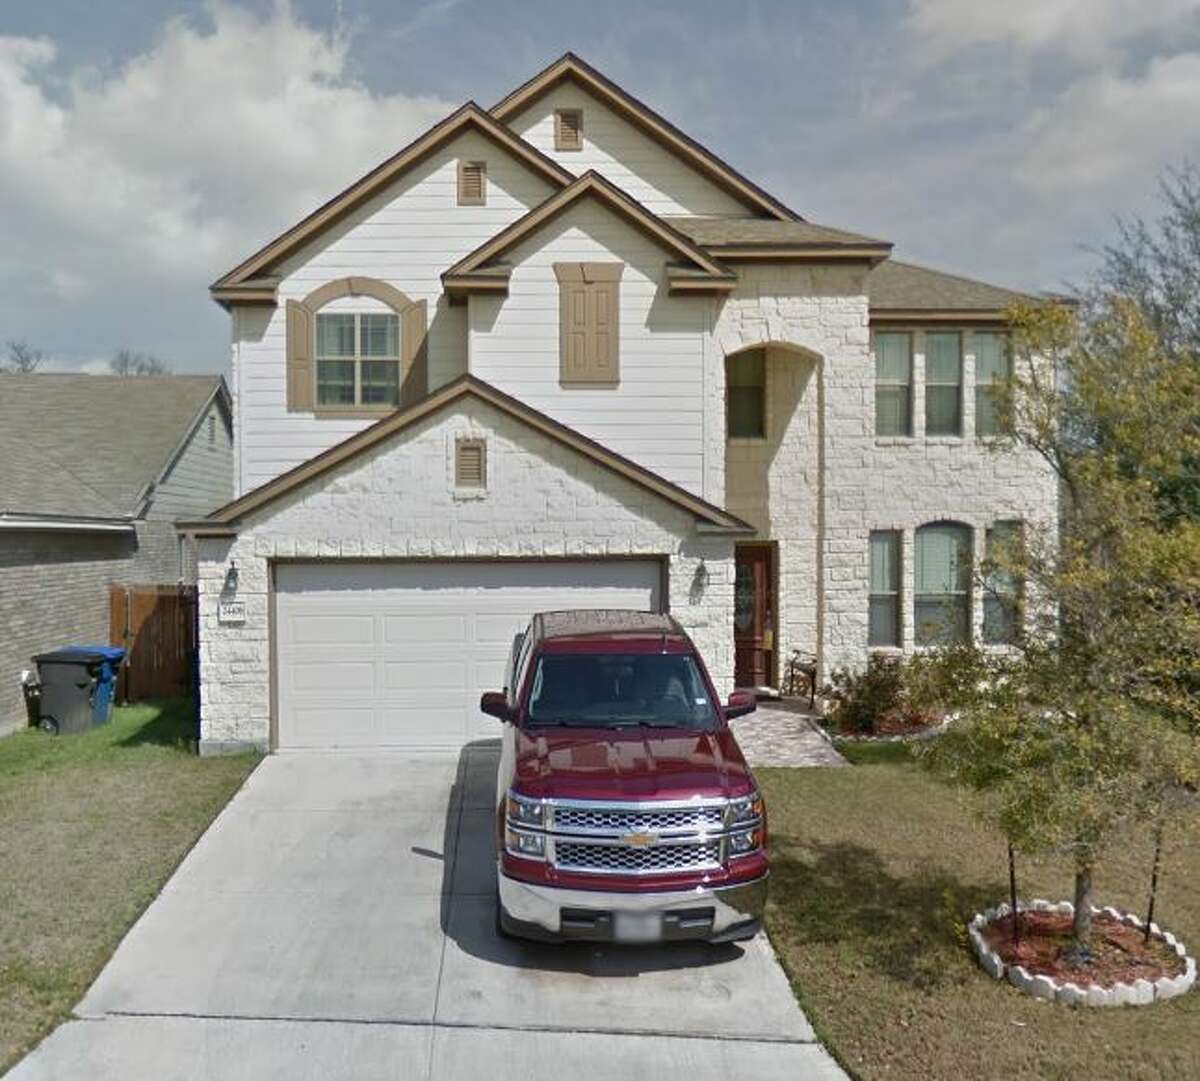 15. San Antonio, TexasZIP: 78255 Cross Mountain, Texas Median home price: $317,100